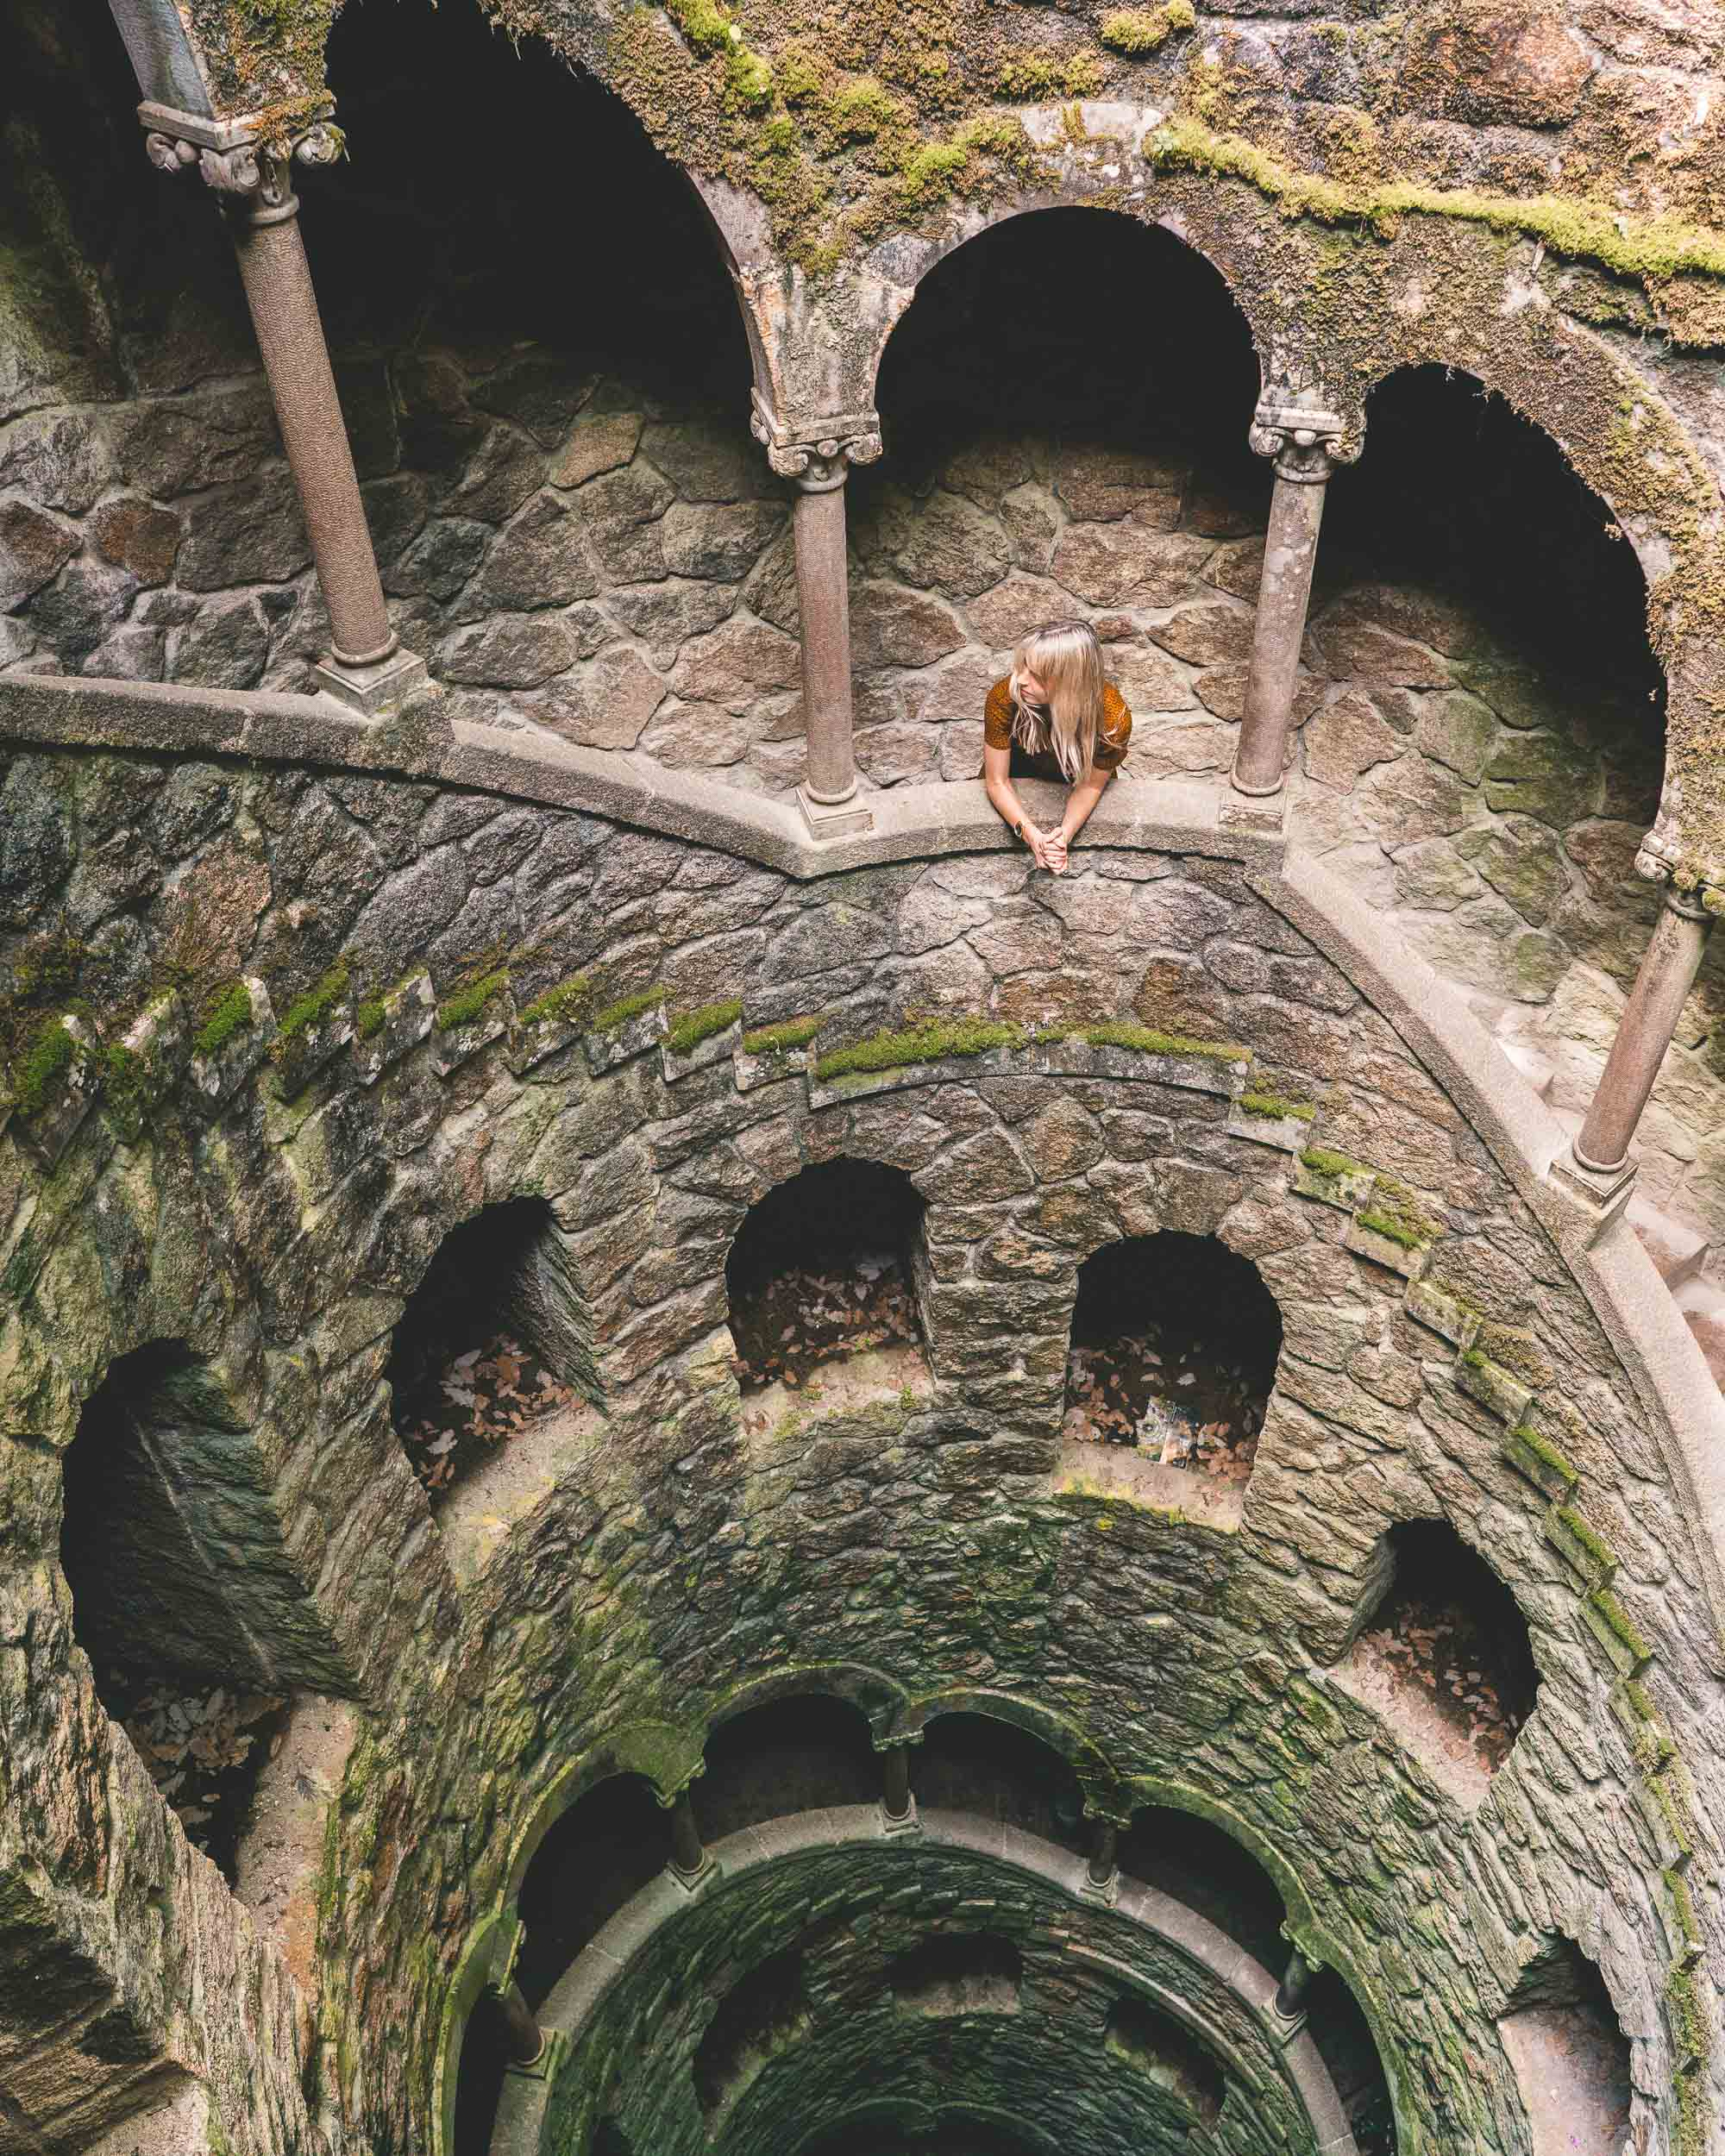 Looking down the initiation well at Quinta de Regulaira in Sintra, Portugal where castles are | Lisbon Travel Guide via Find Us Lost